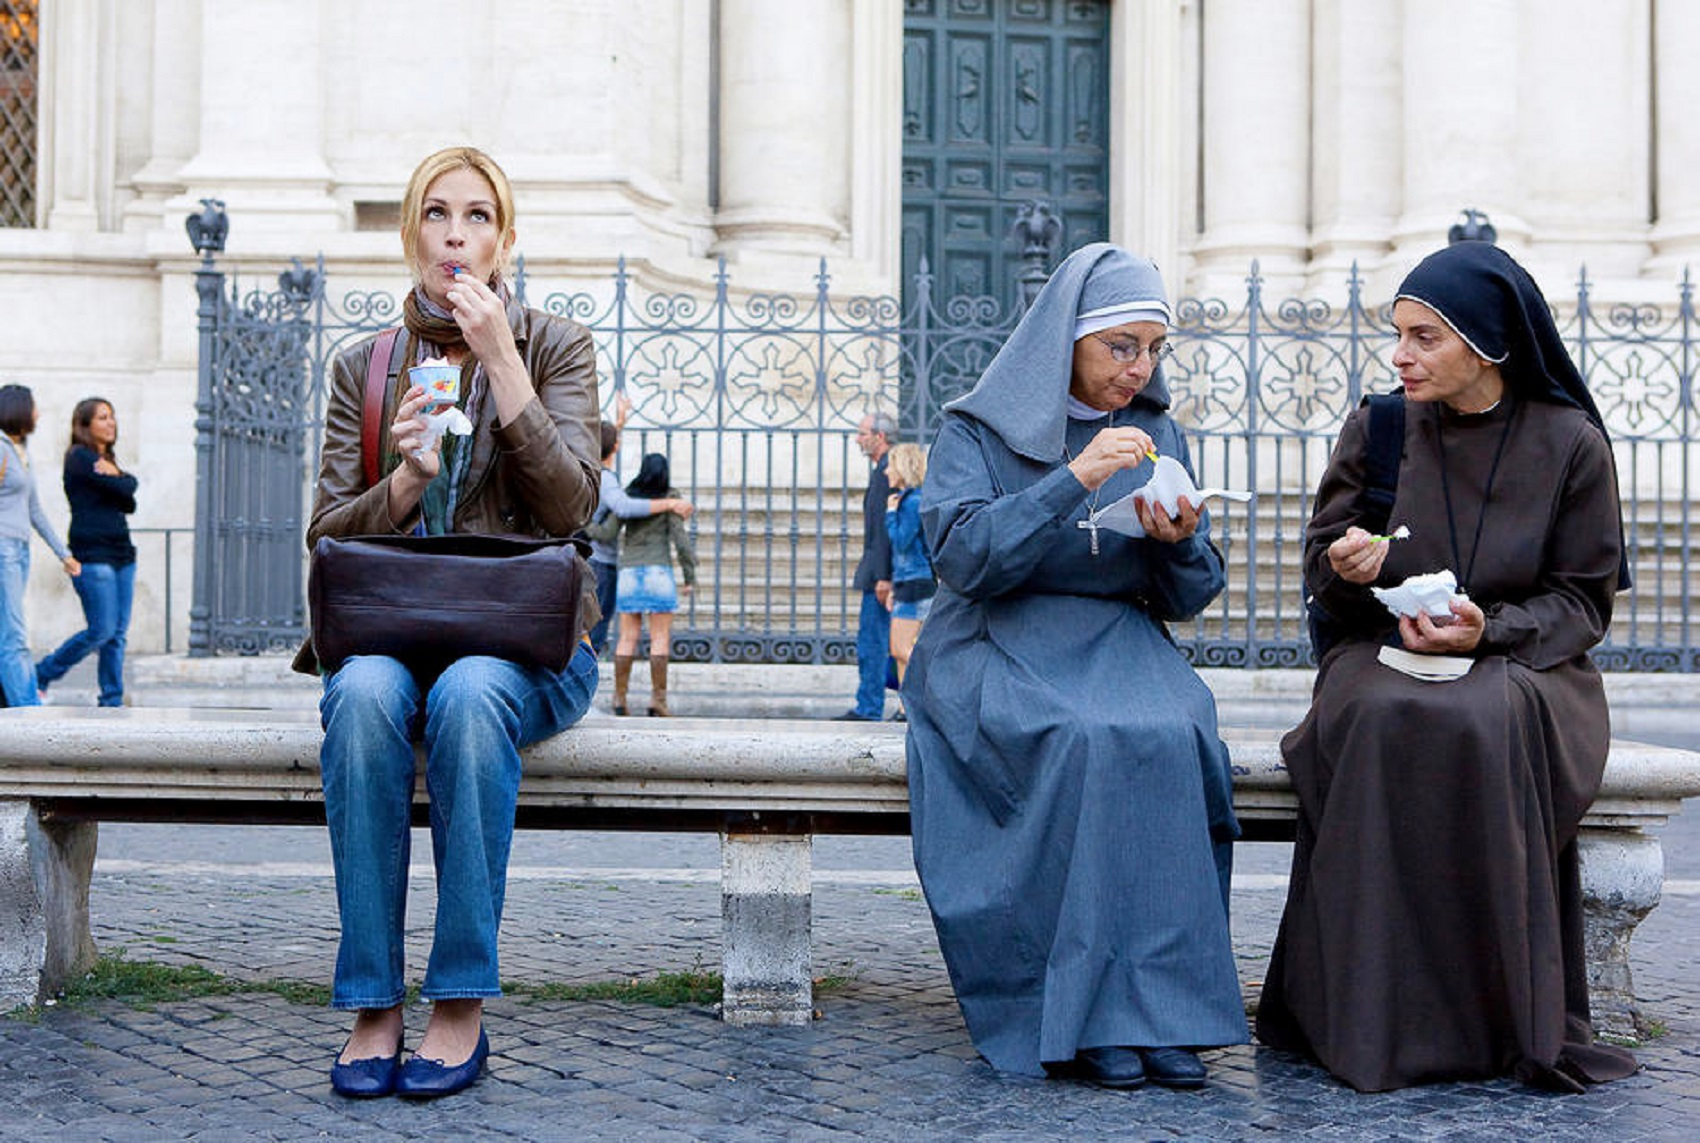 eat-pray-love-in-rome-film-locations